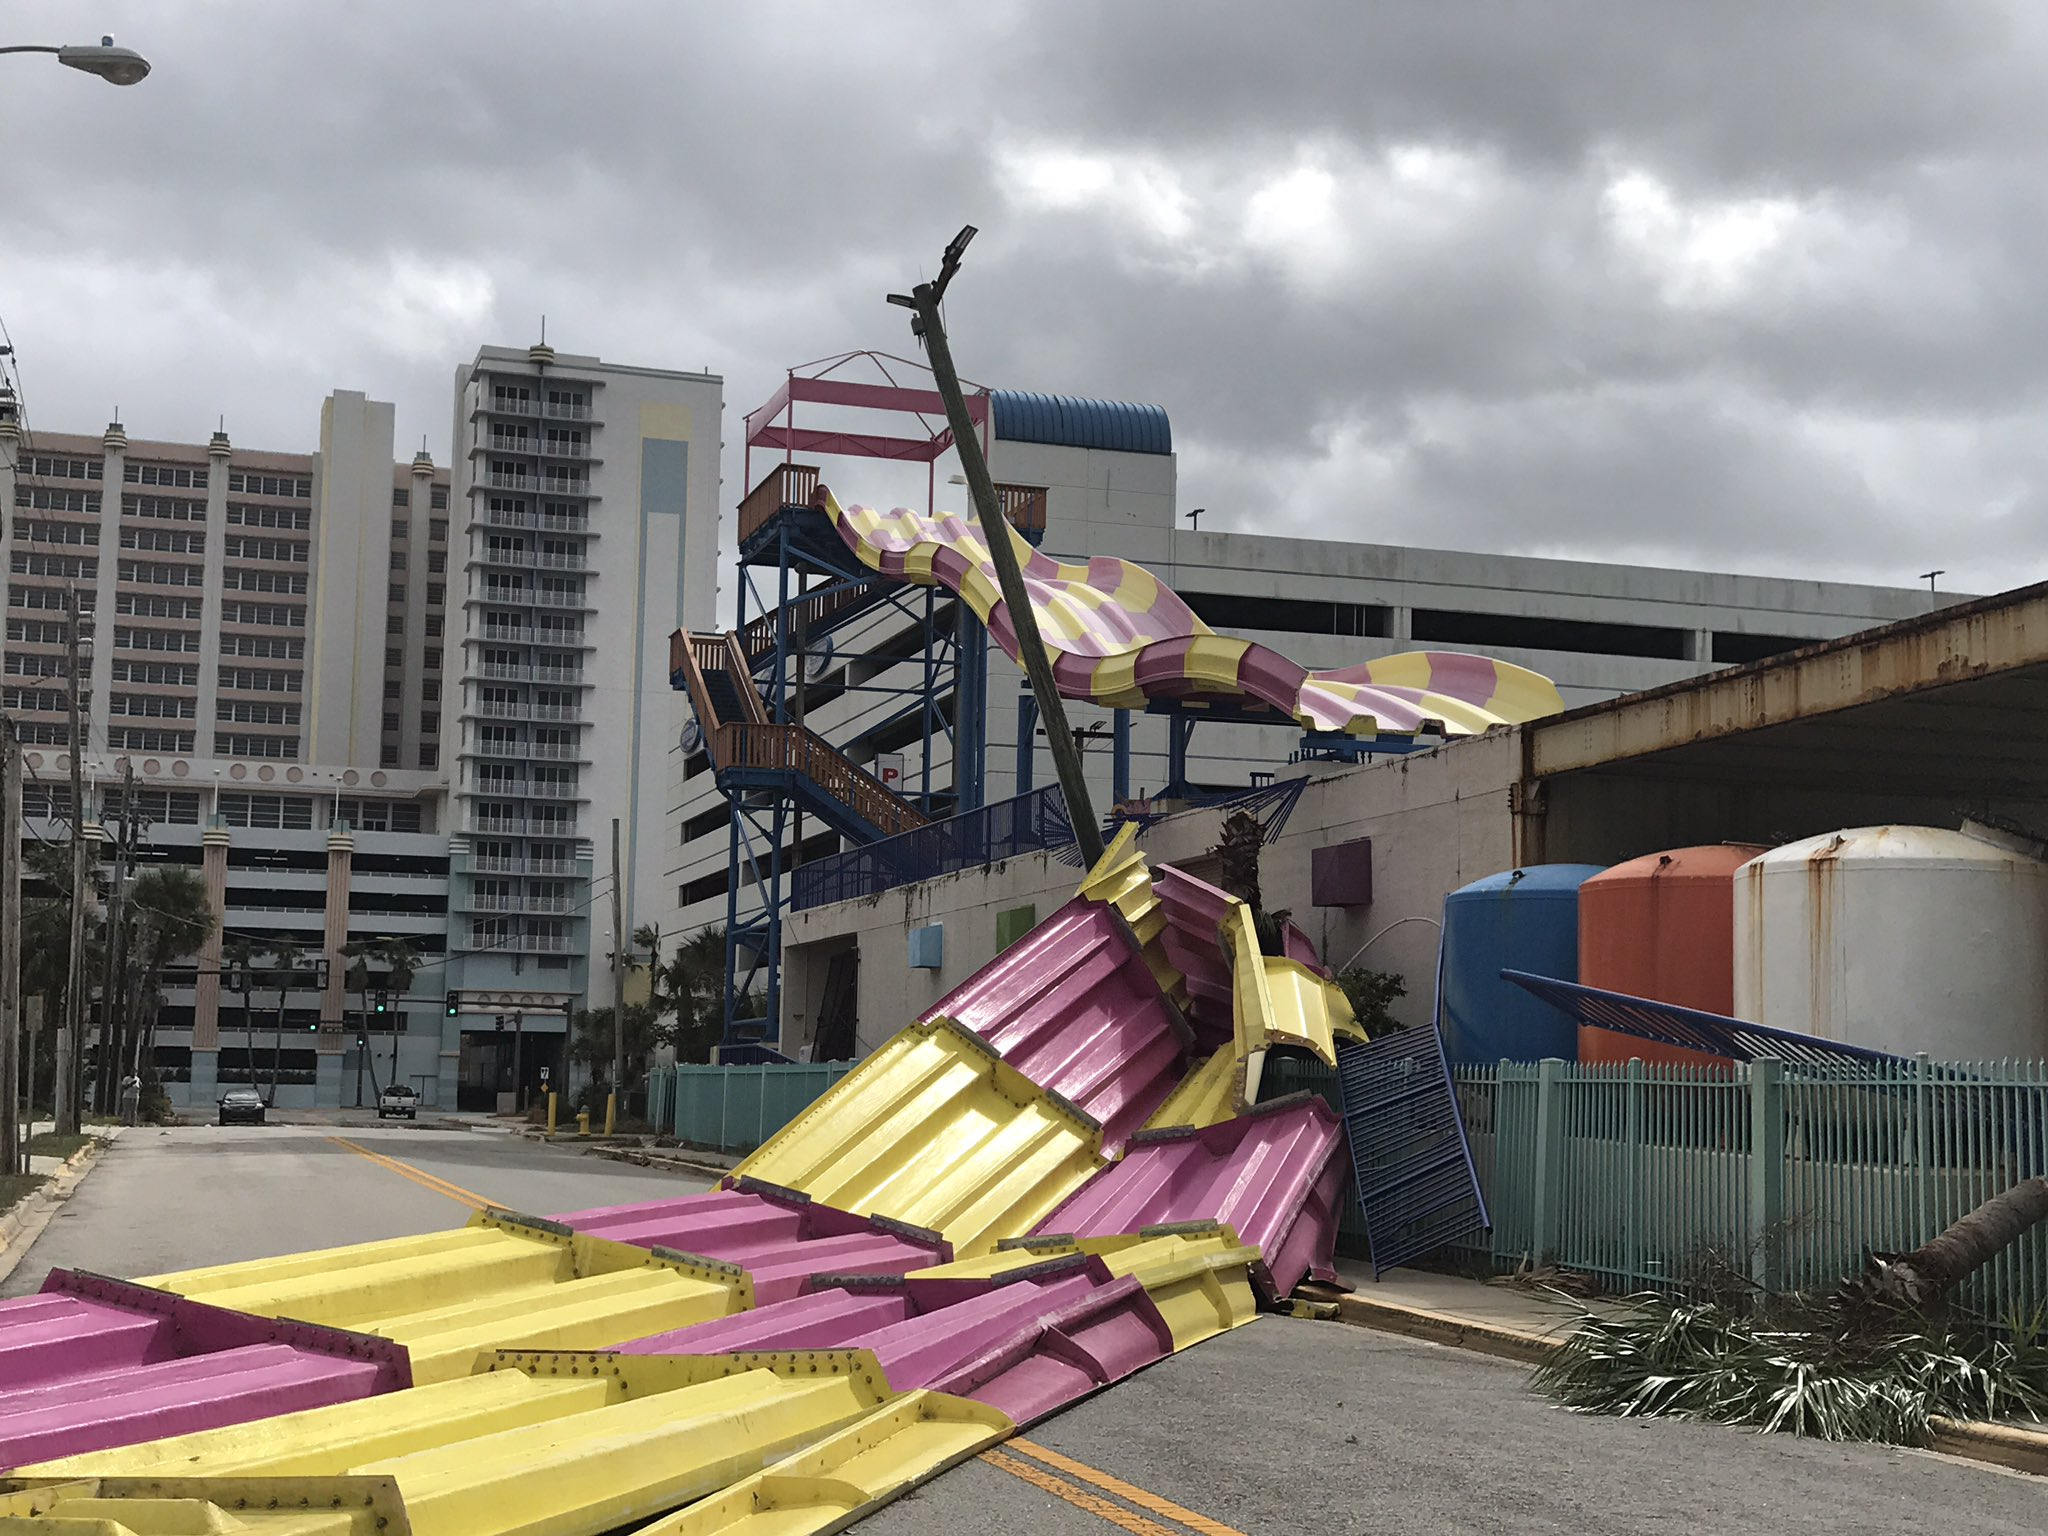 "<div class=""meta image-caption""><div class=""origin-logo origin-image none""><span>none</span></div><span class=""caption-text"">''The big slide at Daytona Lagoon didn't fare so well,'' wrote the city's police department. (Daytona Beach Police/Twitter)</span></div>"